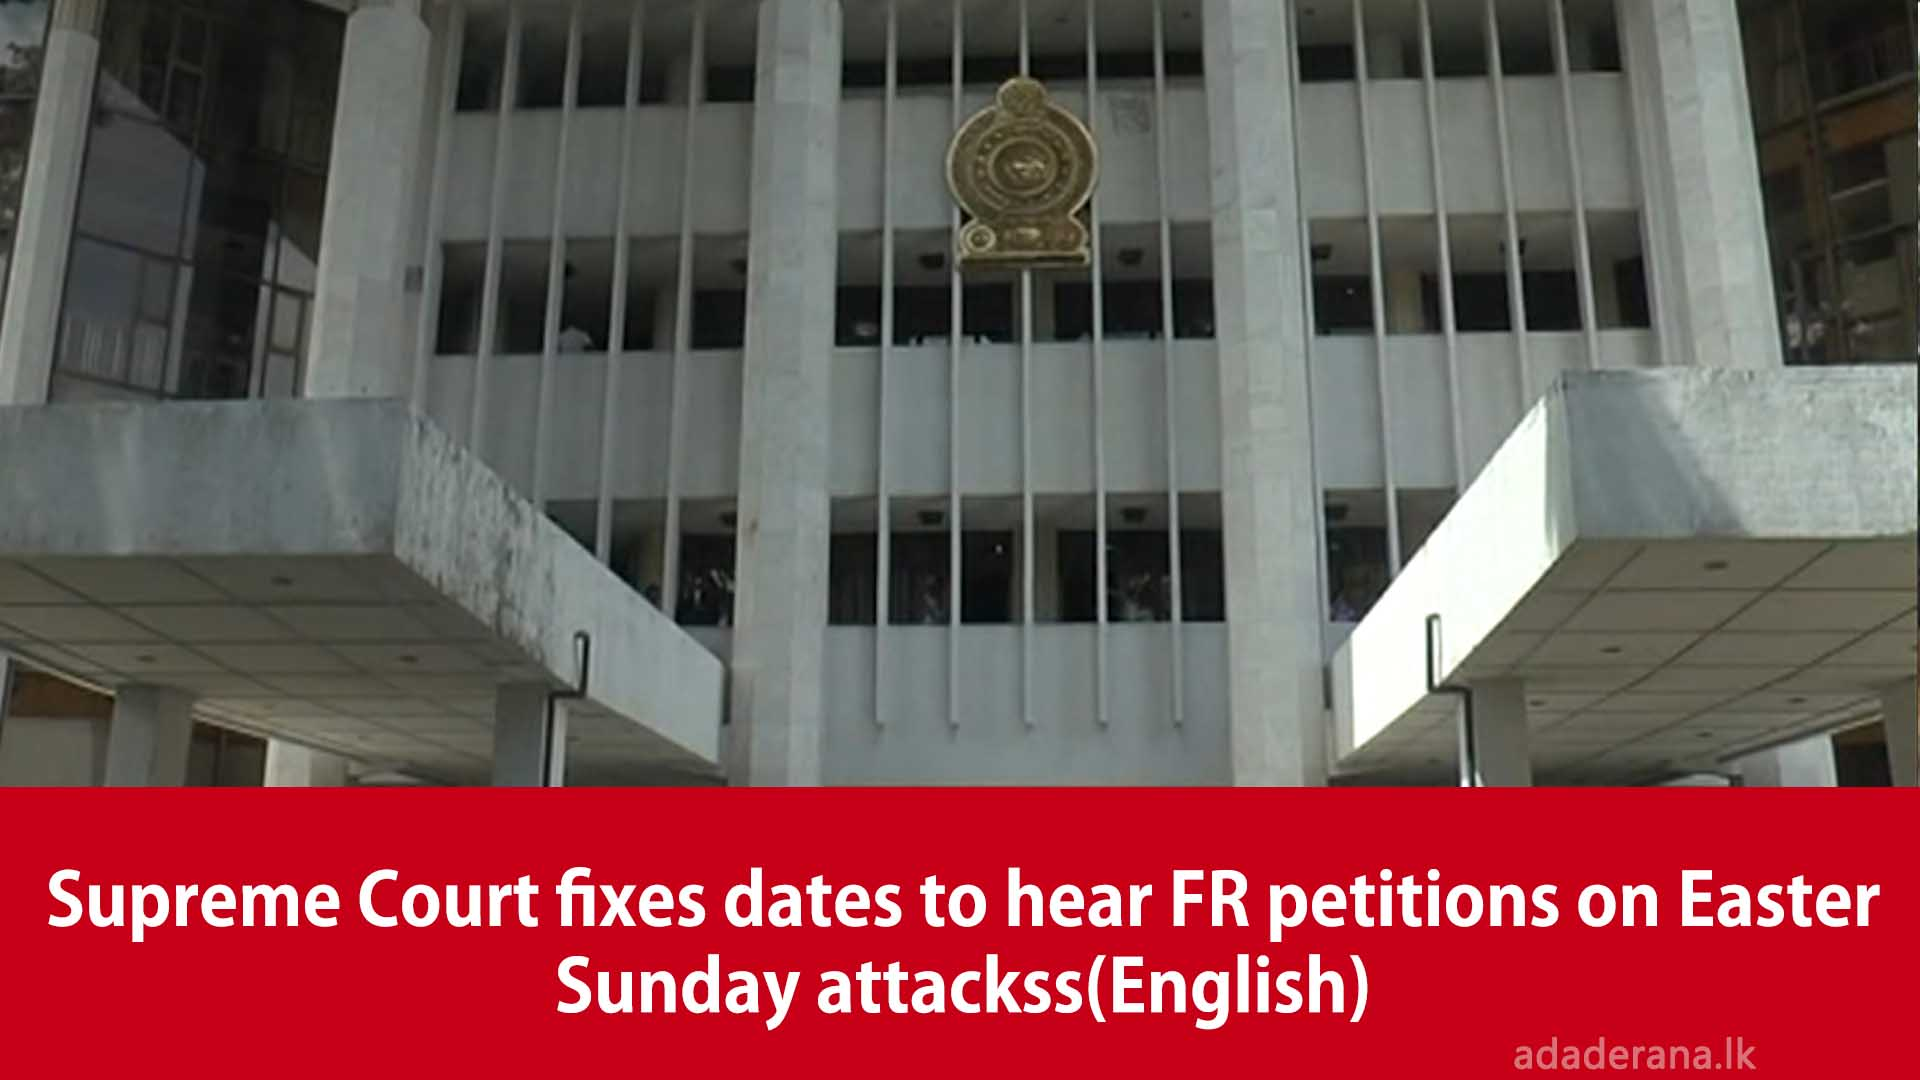 Supreme Court fixes dates to hear FR petitions on Easter Sunday attackss(English)